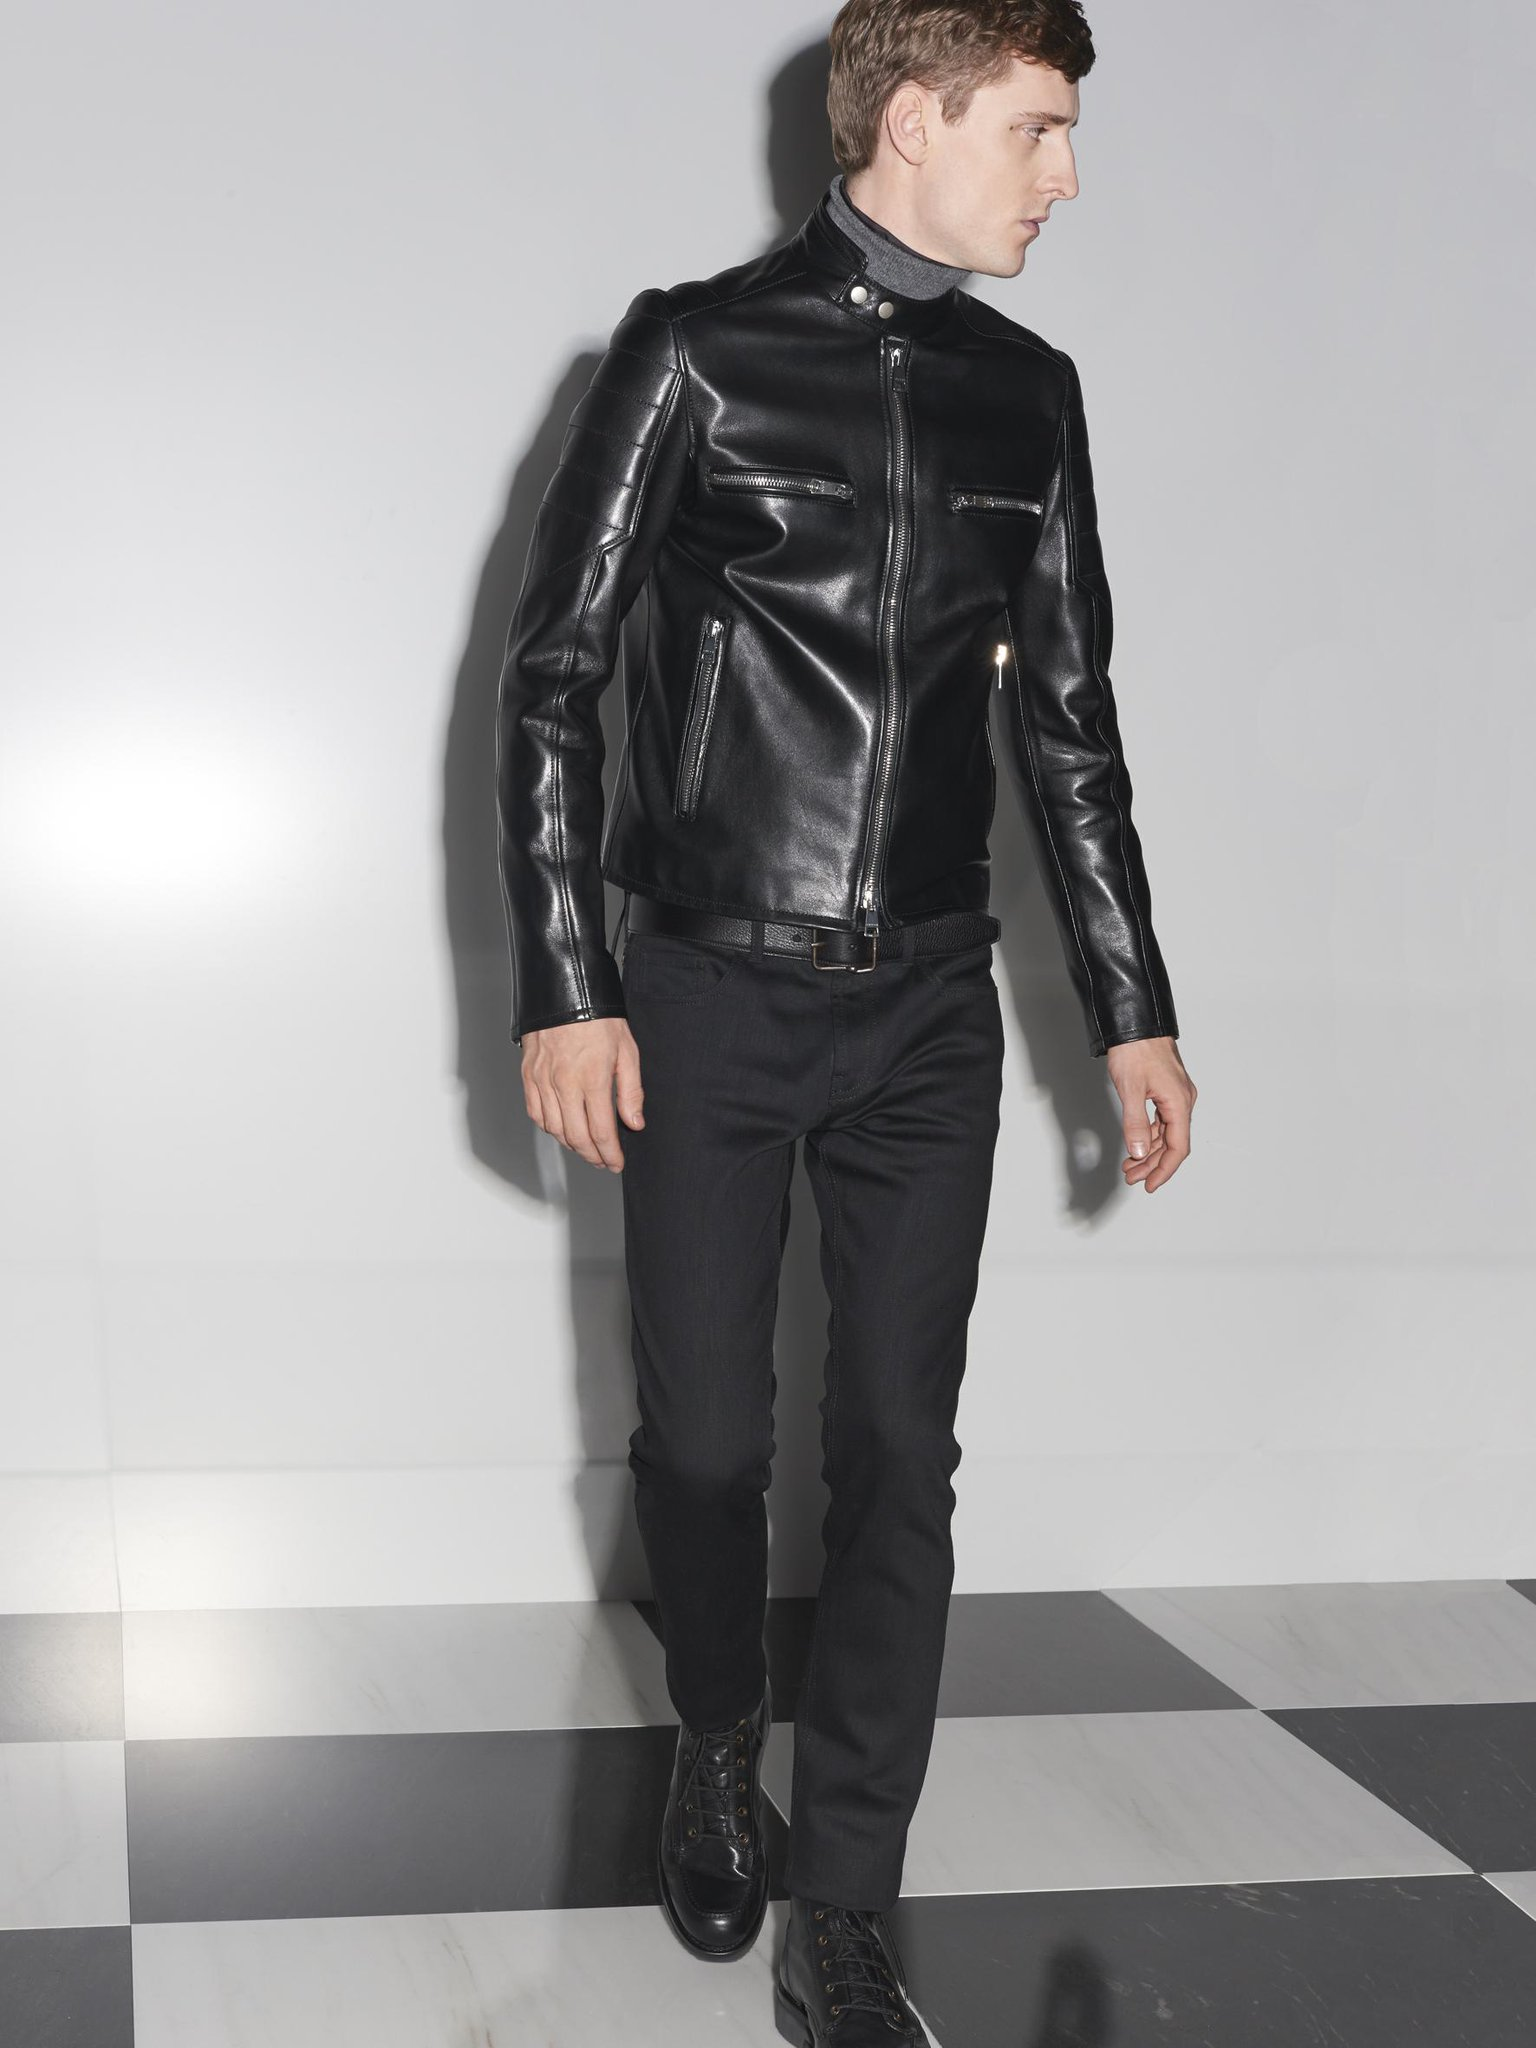 Easy rider. http://t.co/HqMNRT1mY0 #gucciguys #gucciprefall14 http://t.co/zqoyDwhKX4